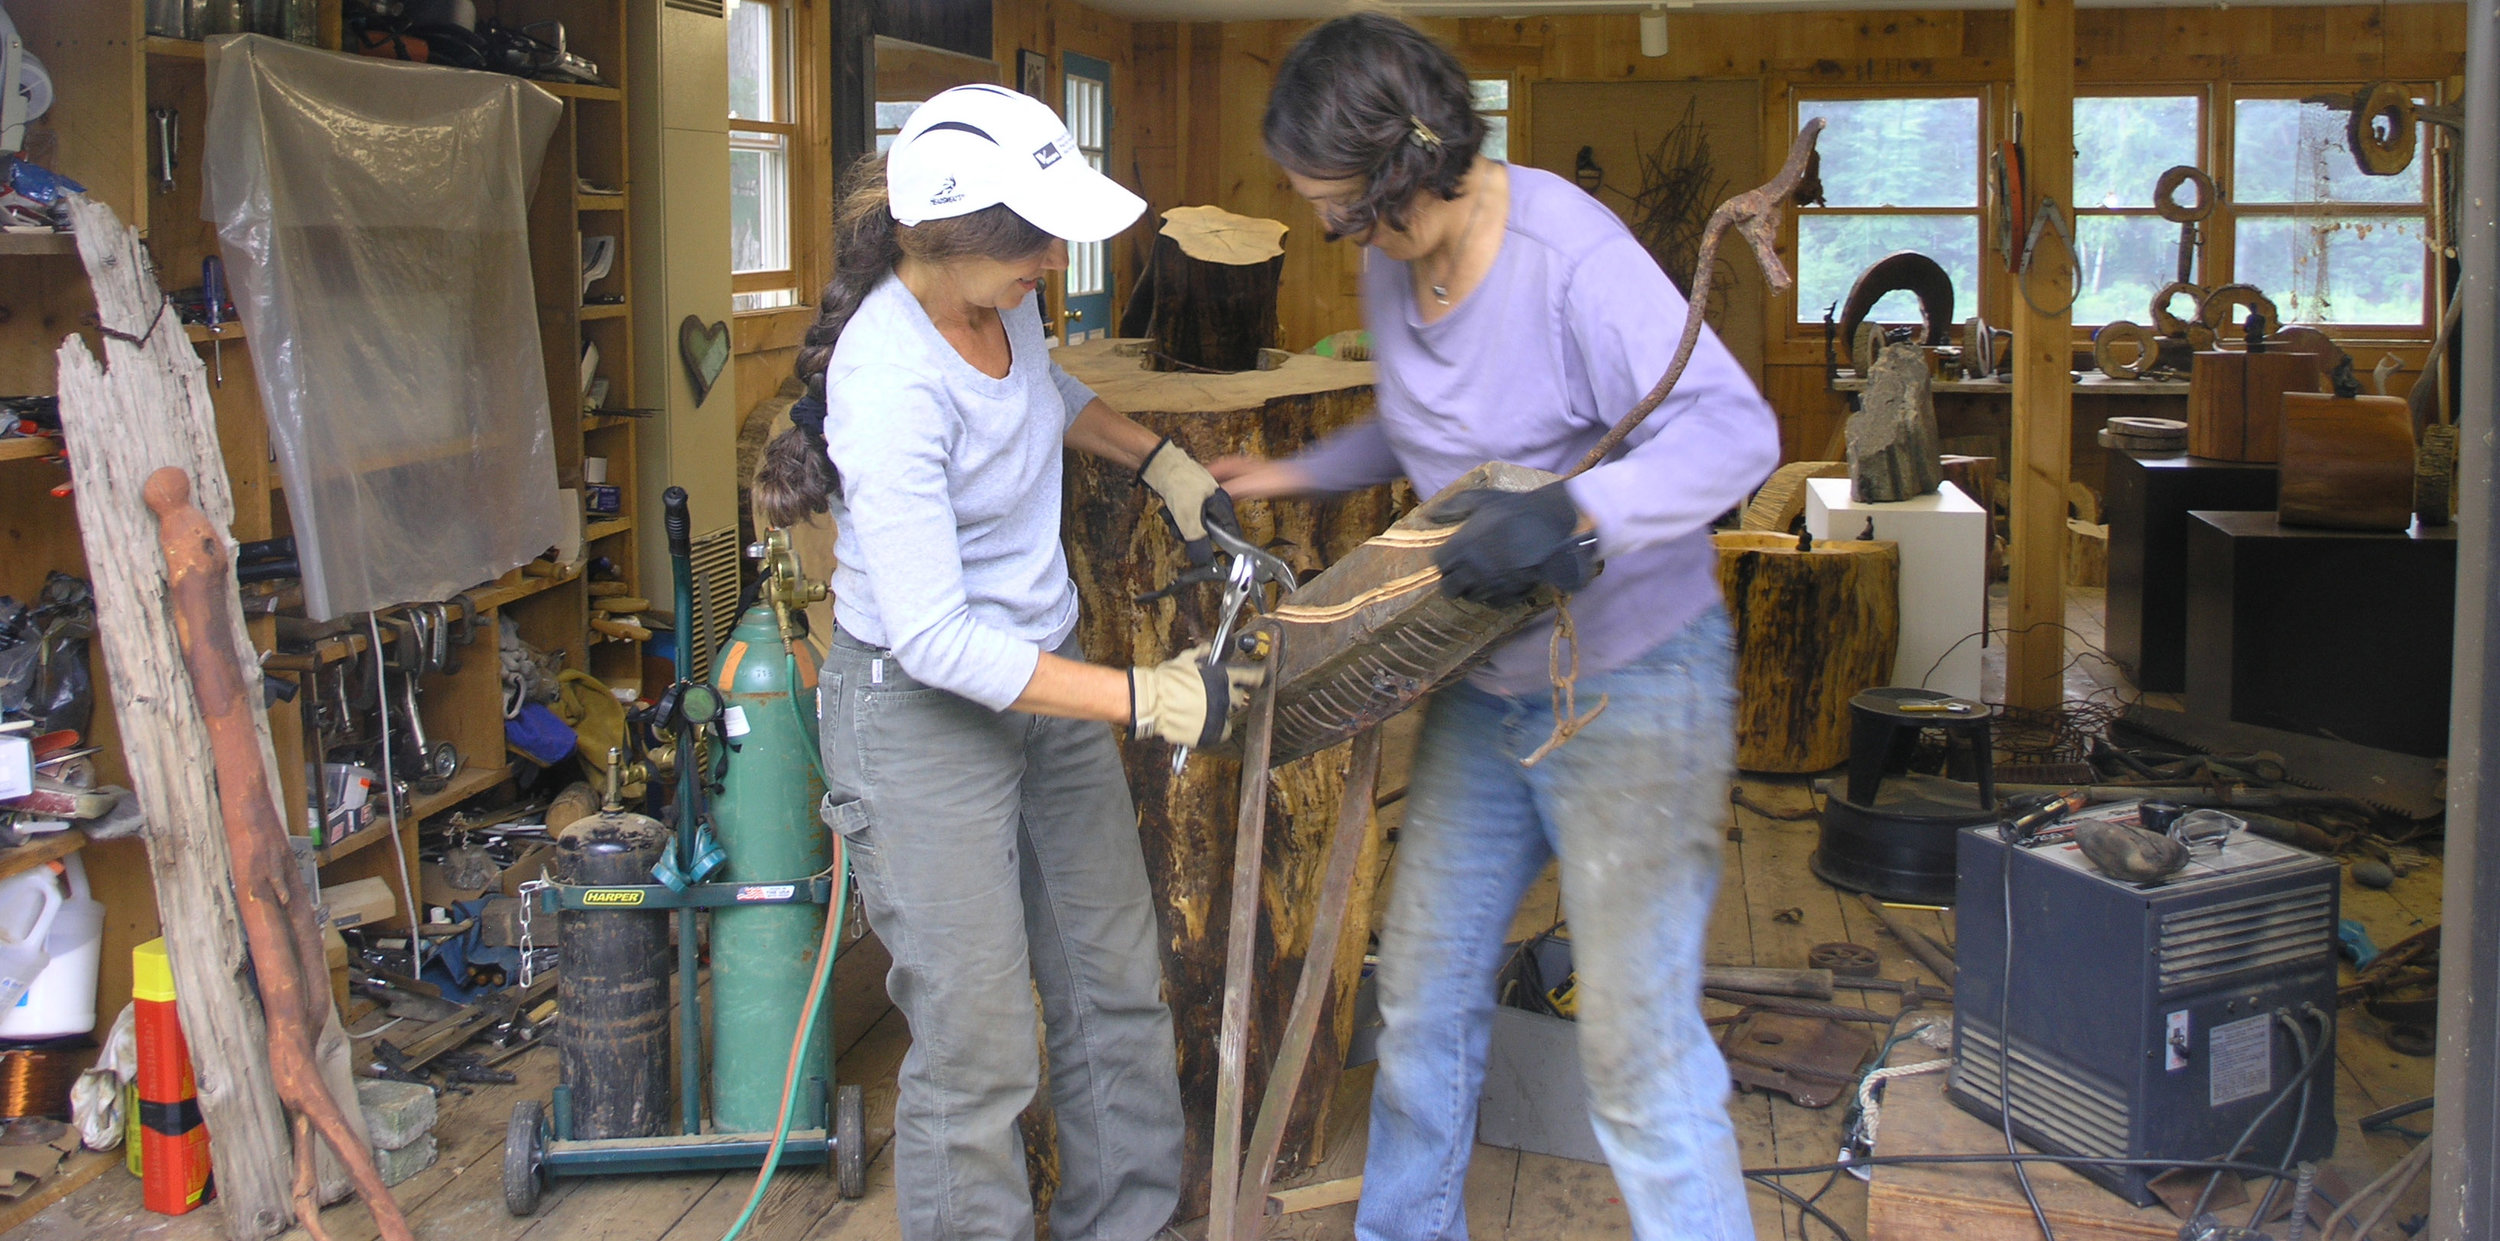 Linda Hoffman (left) and Madeleine Lord working on Belle the Bird in Hoffman's Studio, 2009